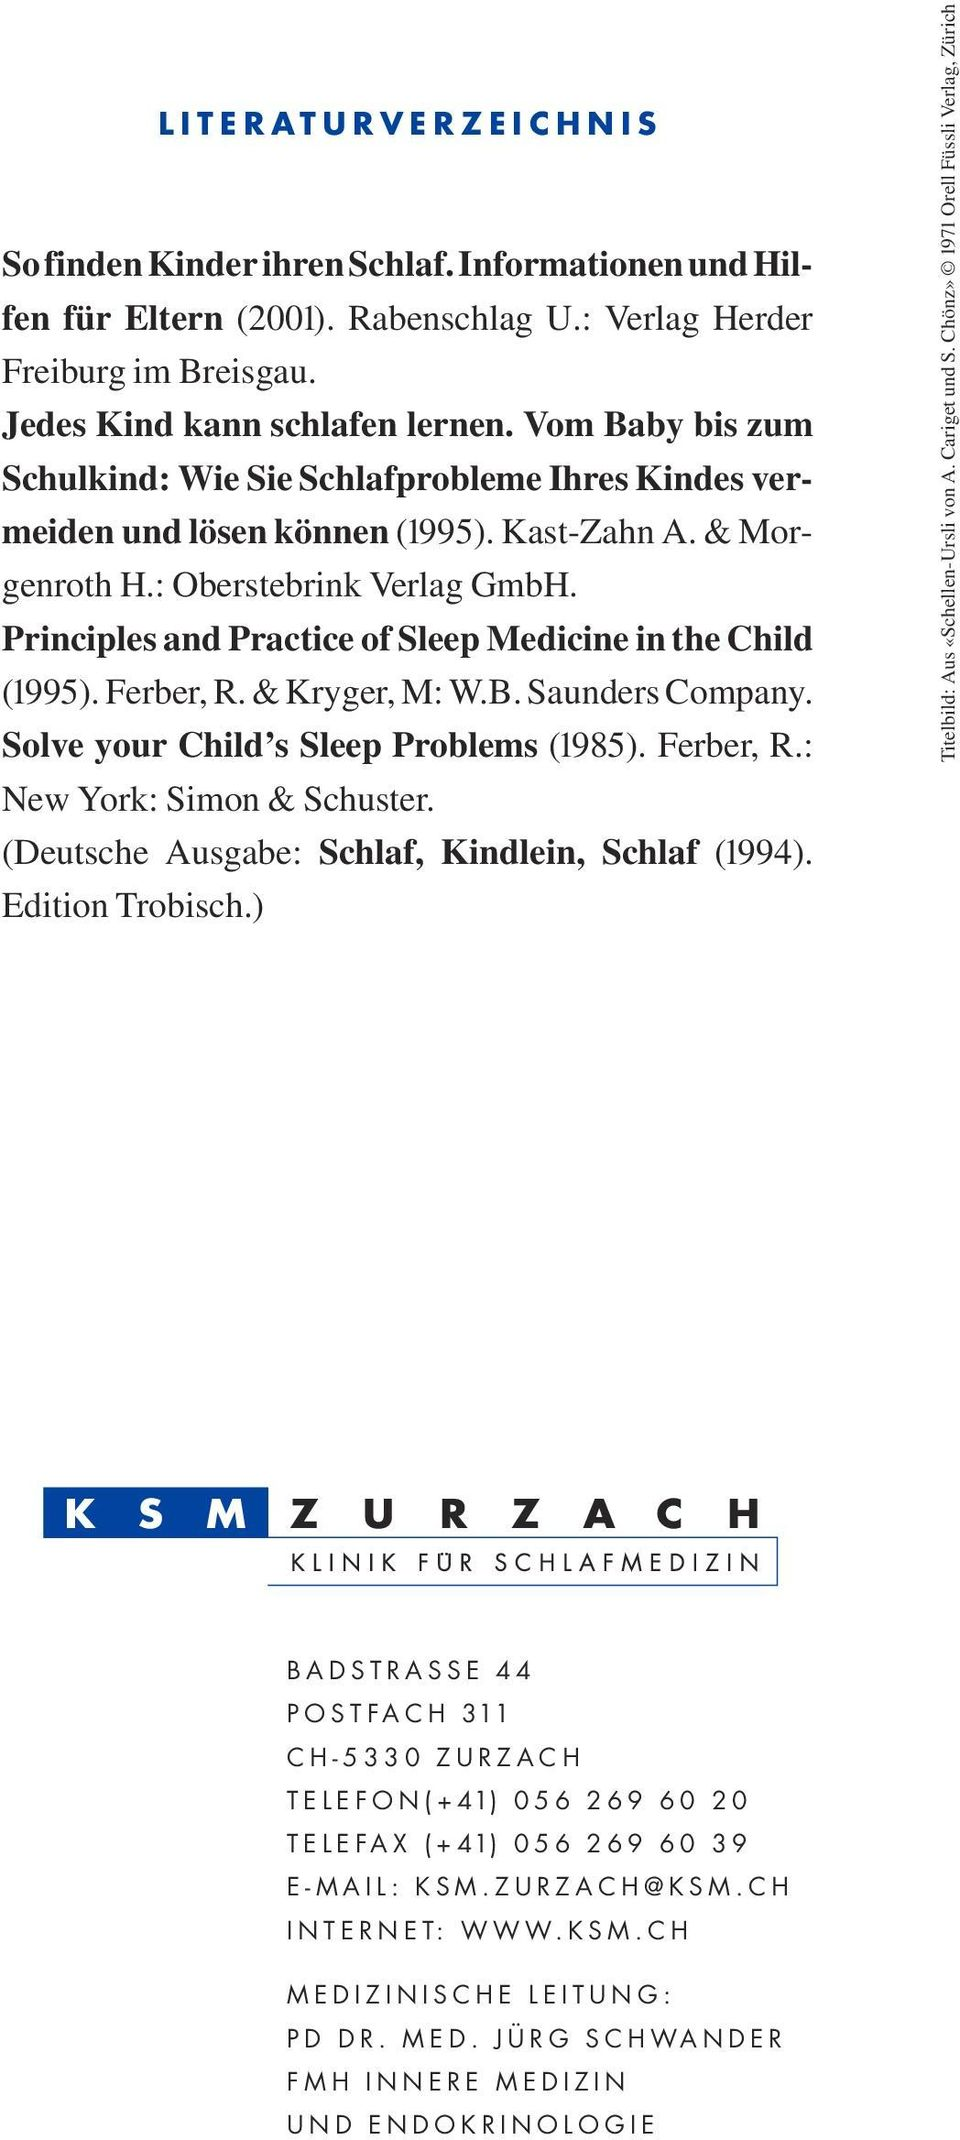 Principles and Practice of Sleep Medicine in the Child (1995). Ferber, R. & Kryger, M: W.B. Saunders Company. Solve your Child s Sleep Problems (1985). Ferber, R.: New York: Simon & Schuster.